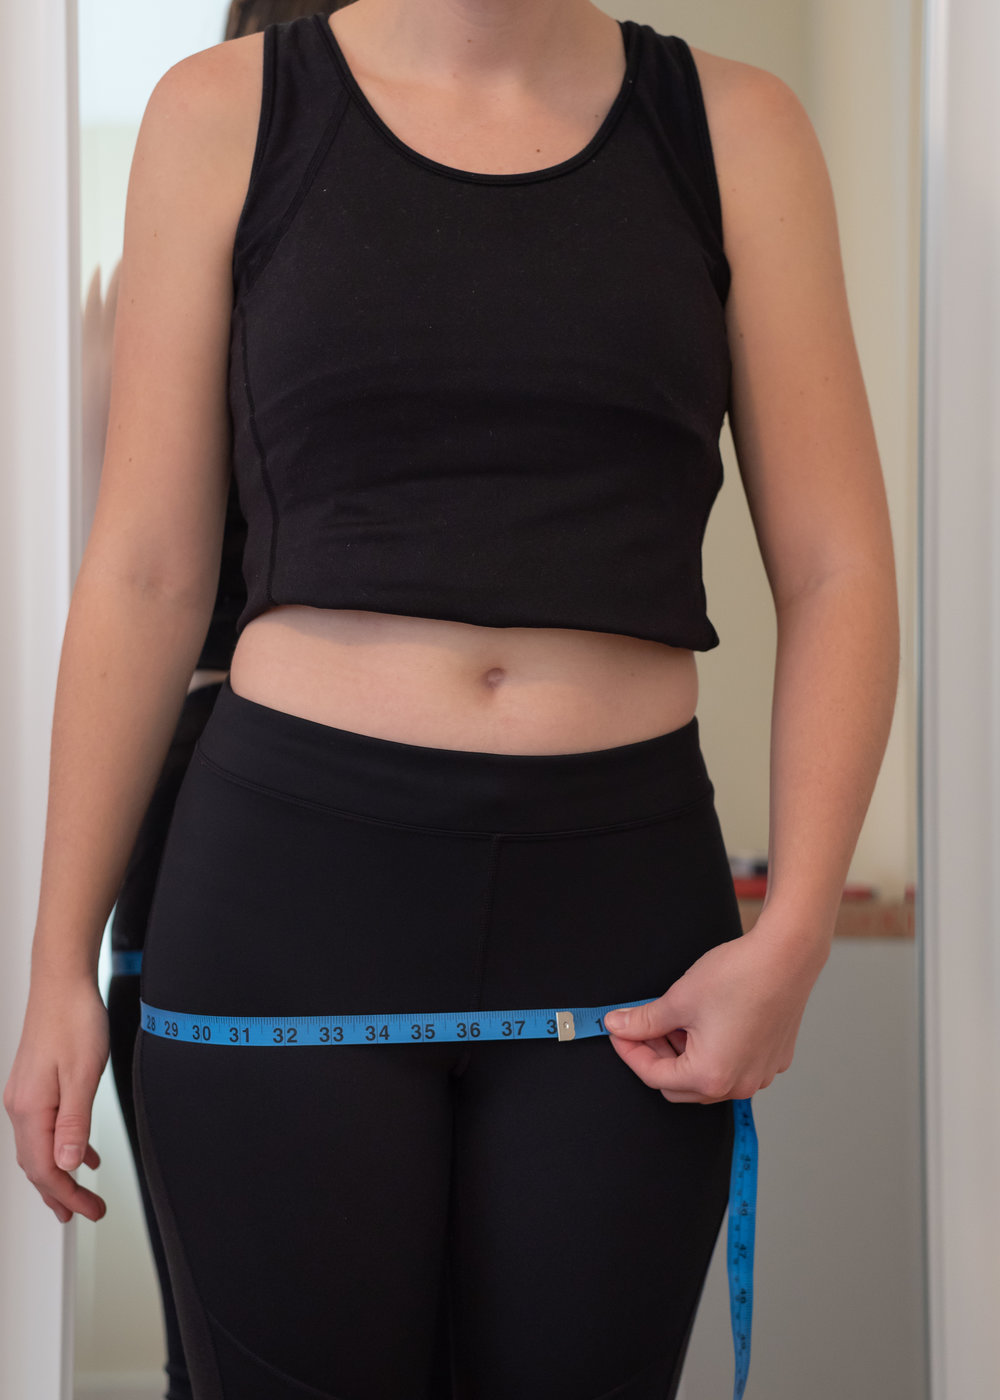 How to take your high hip or hip measurement for clothing